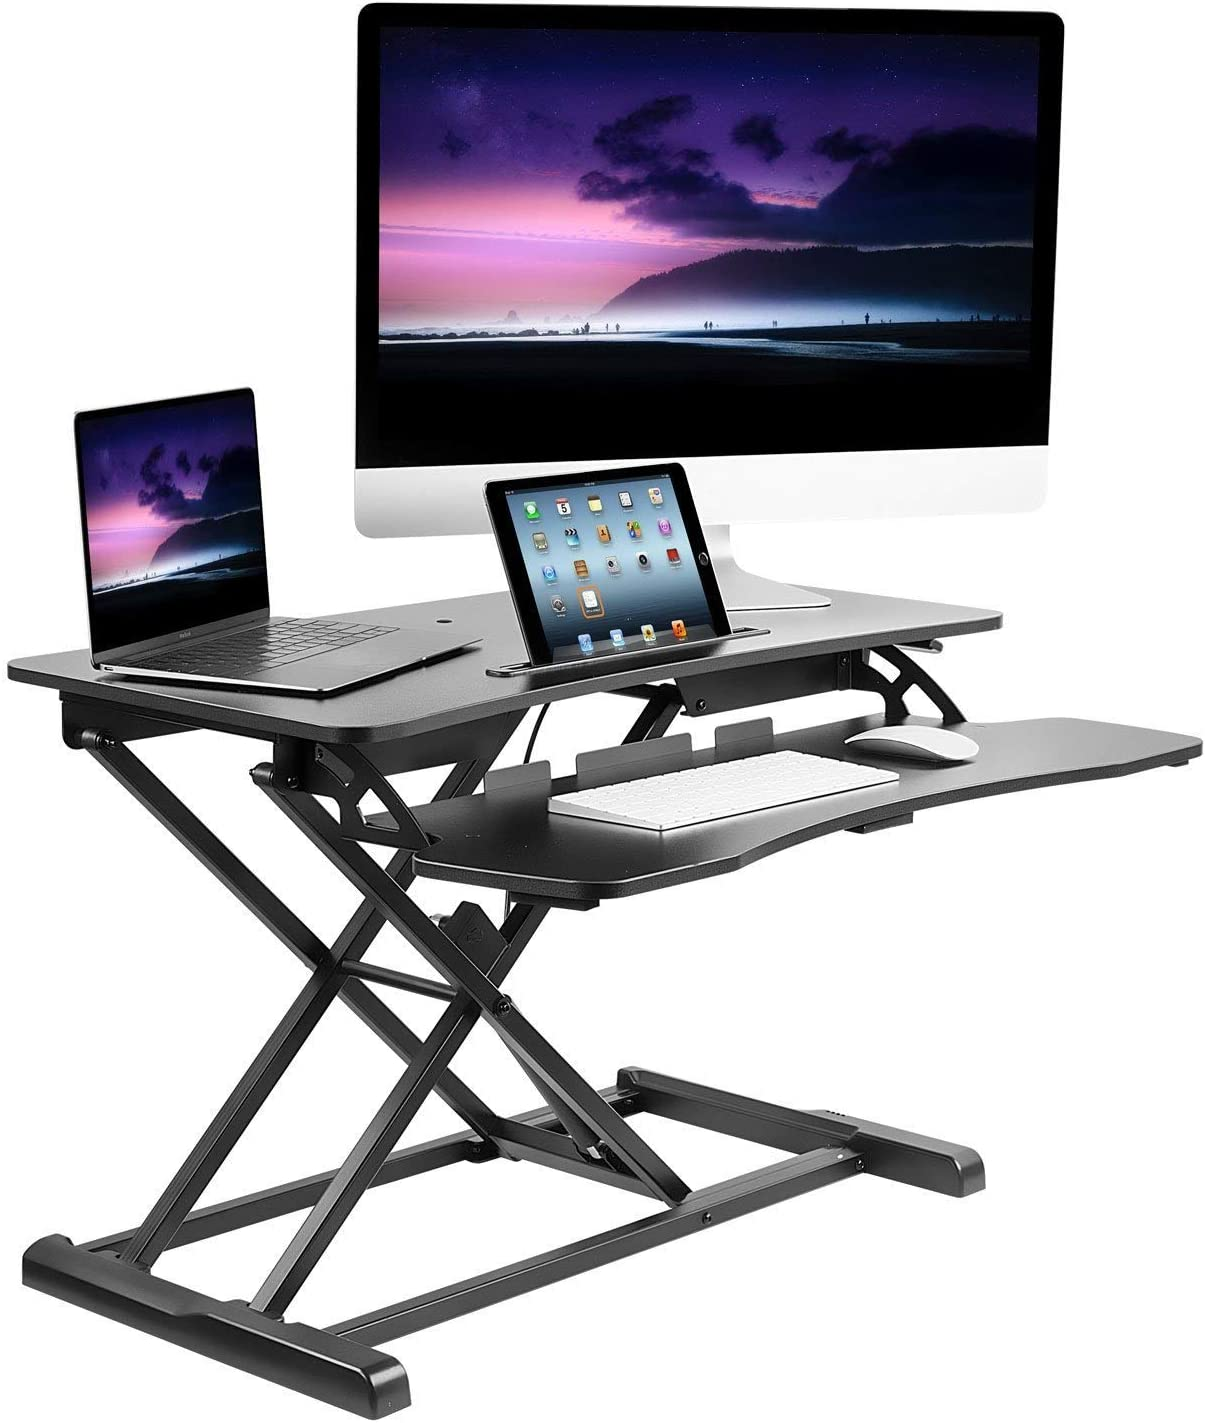 Mount-It Adjustable Standing Desk Converter with Keyboard Tray, Ergonomic Tabletop Sit Stand Worksation 31.5 Wide for Desktop and Laptop Computers